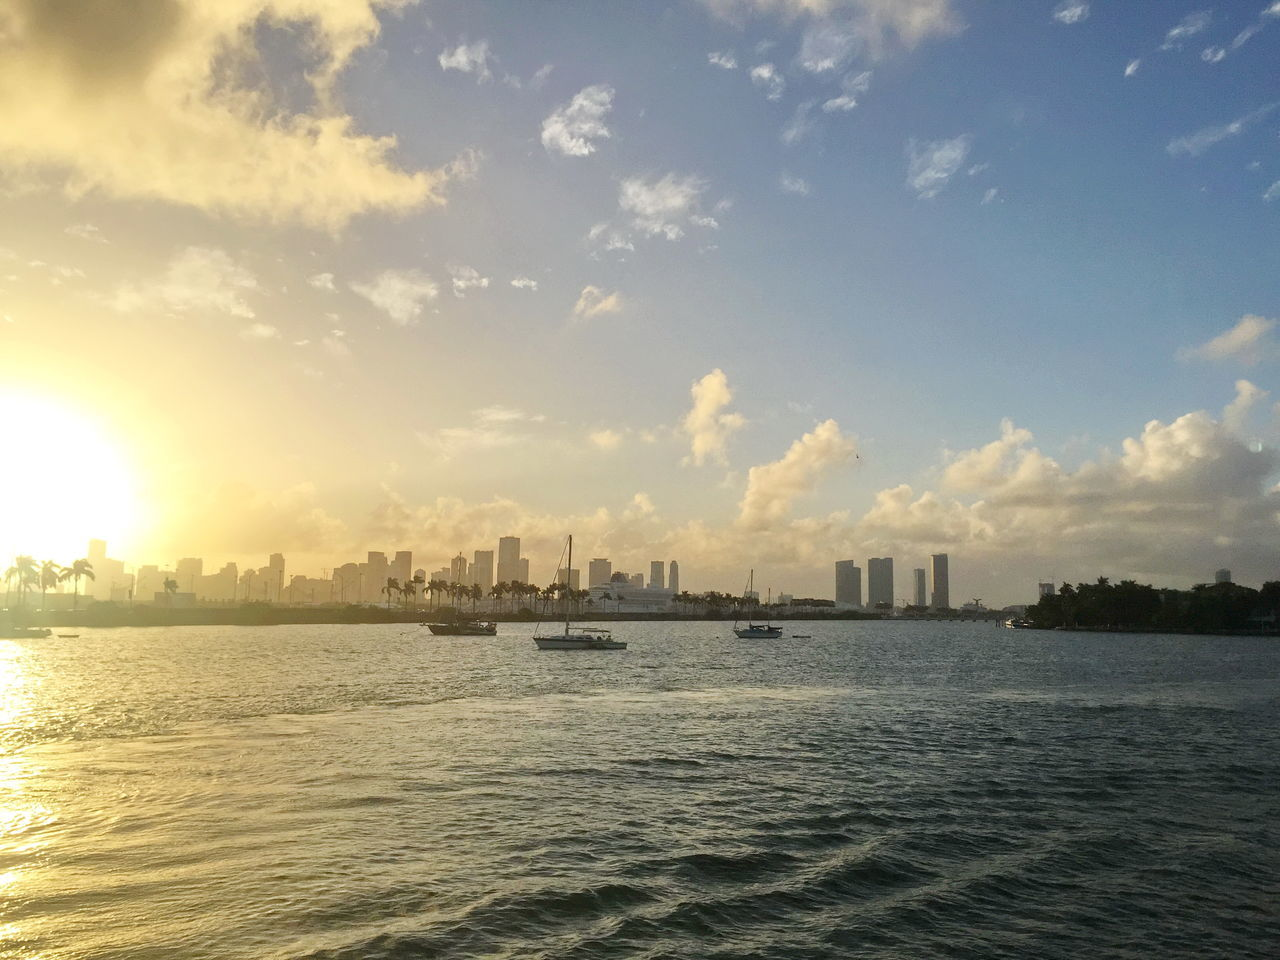 Skyscrapers In City By Sea Against Sky During Sunset